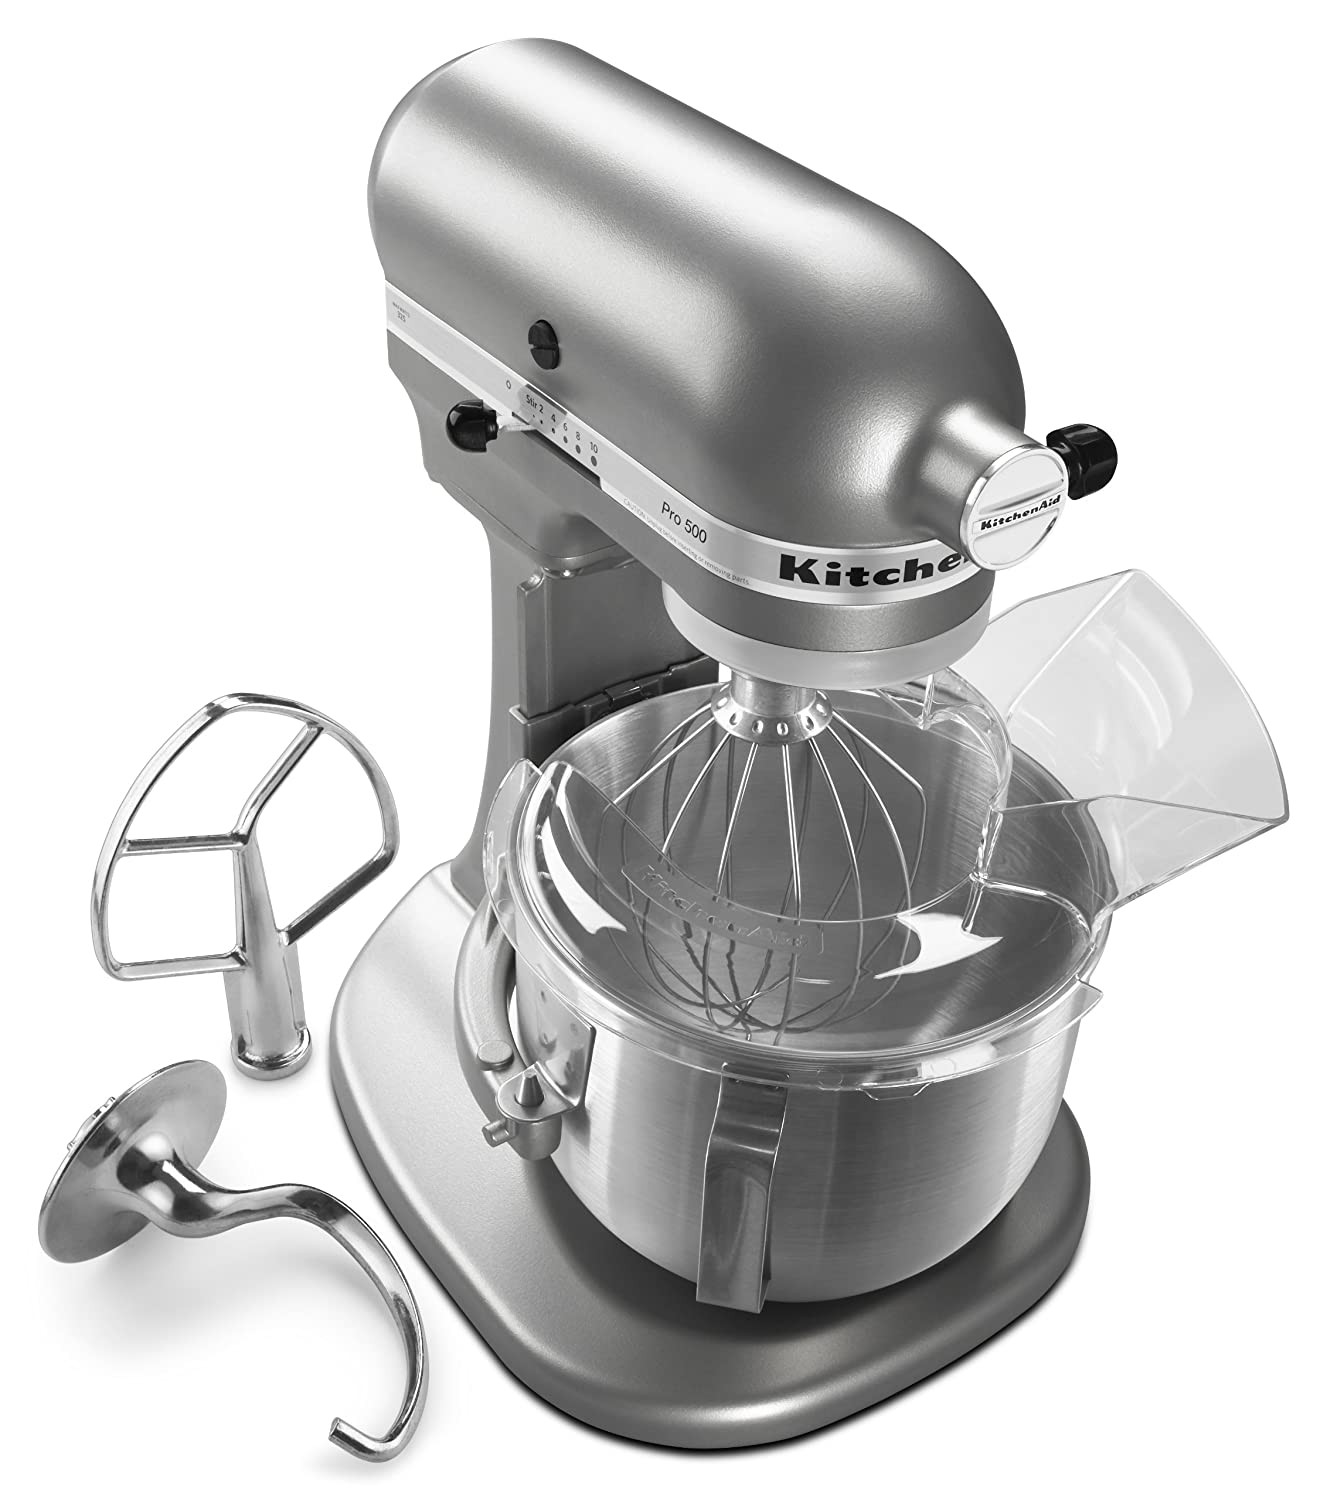 amazoncom kitchenaid ksm500pssm pro 500 series 10speed 5quart stand mixer silver metallic electric stand mixers kitchen u0026 dining - Kitchenaid Mixer Best Price